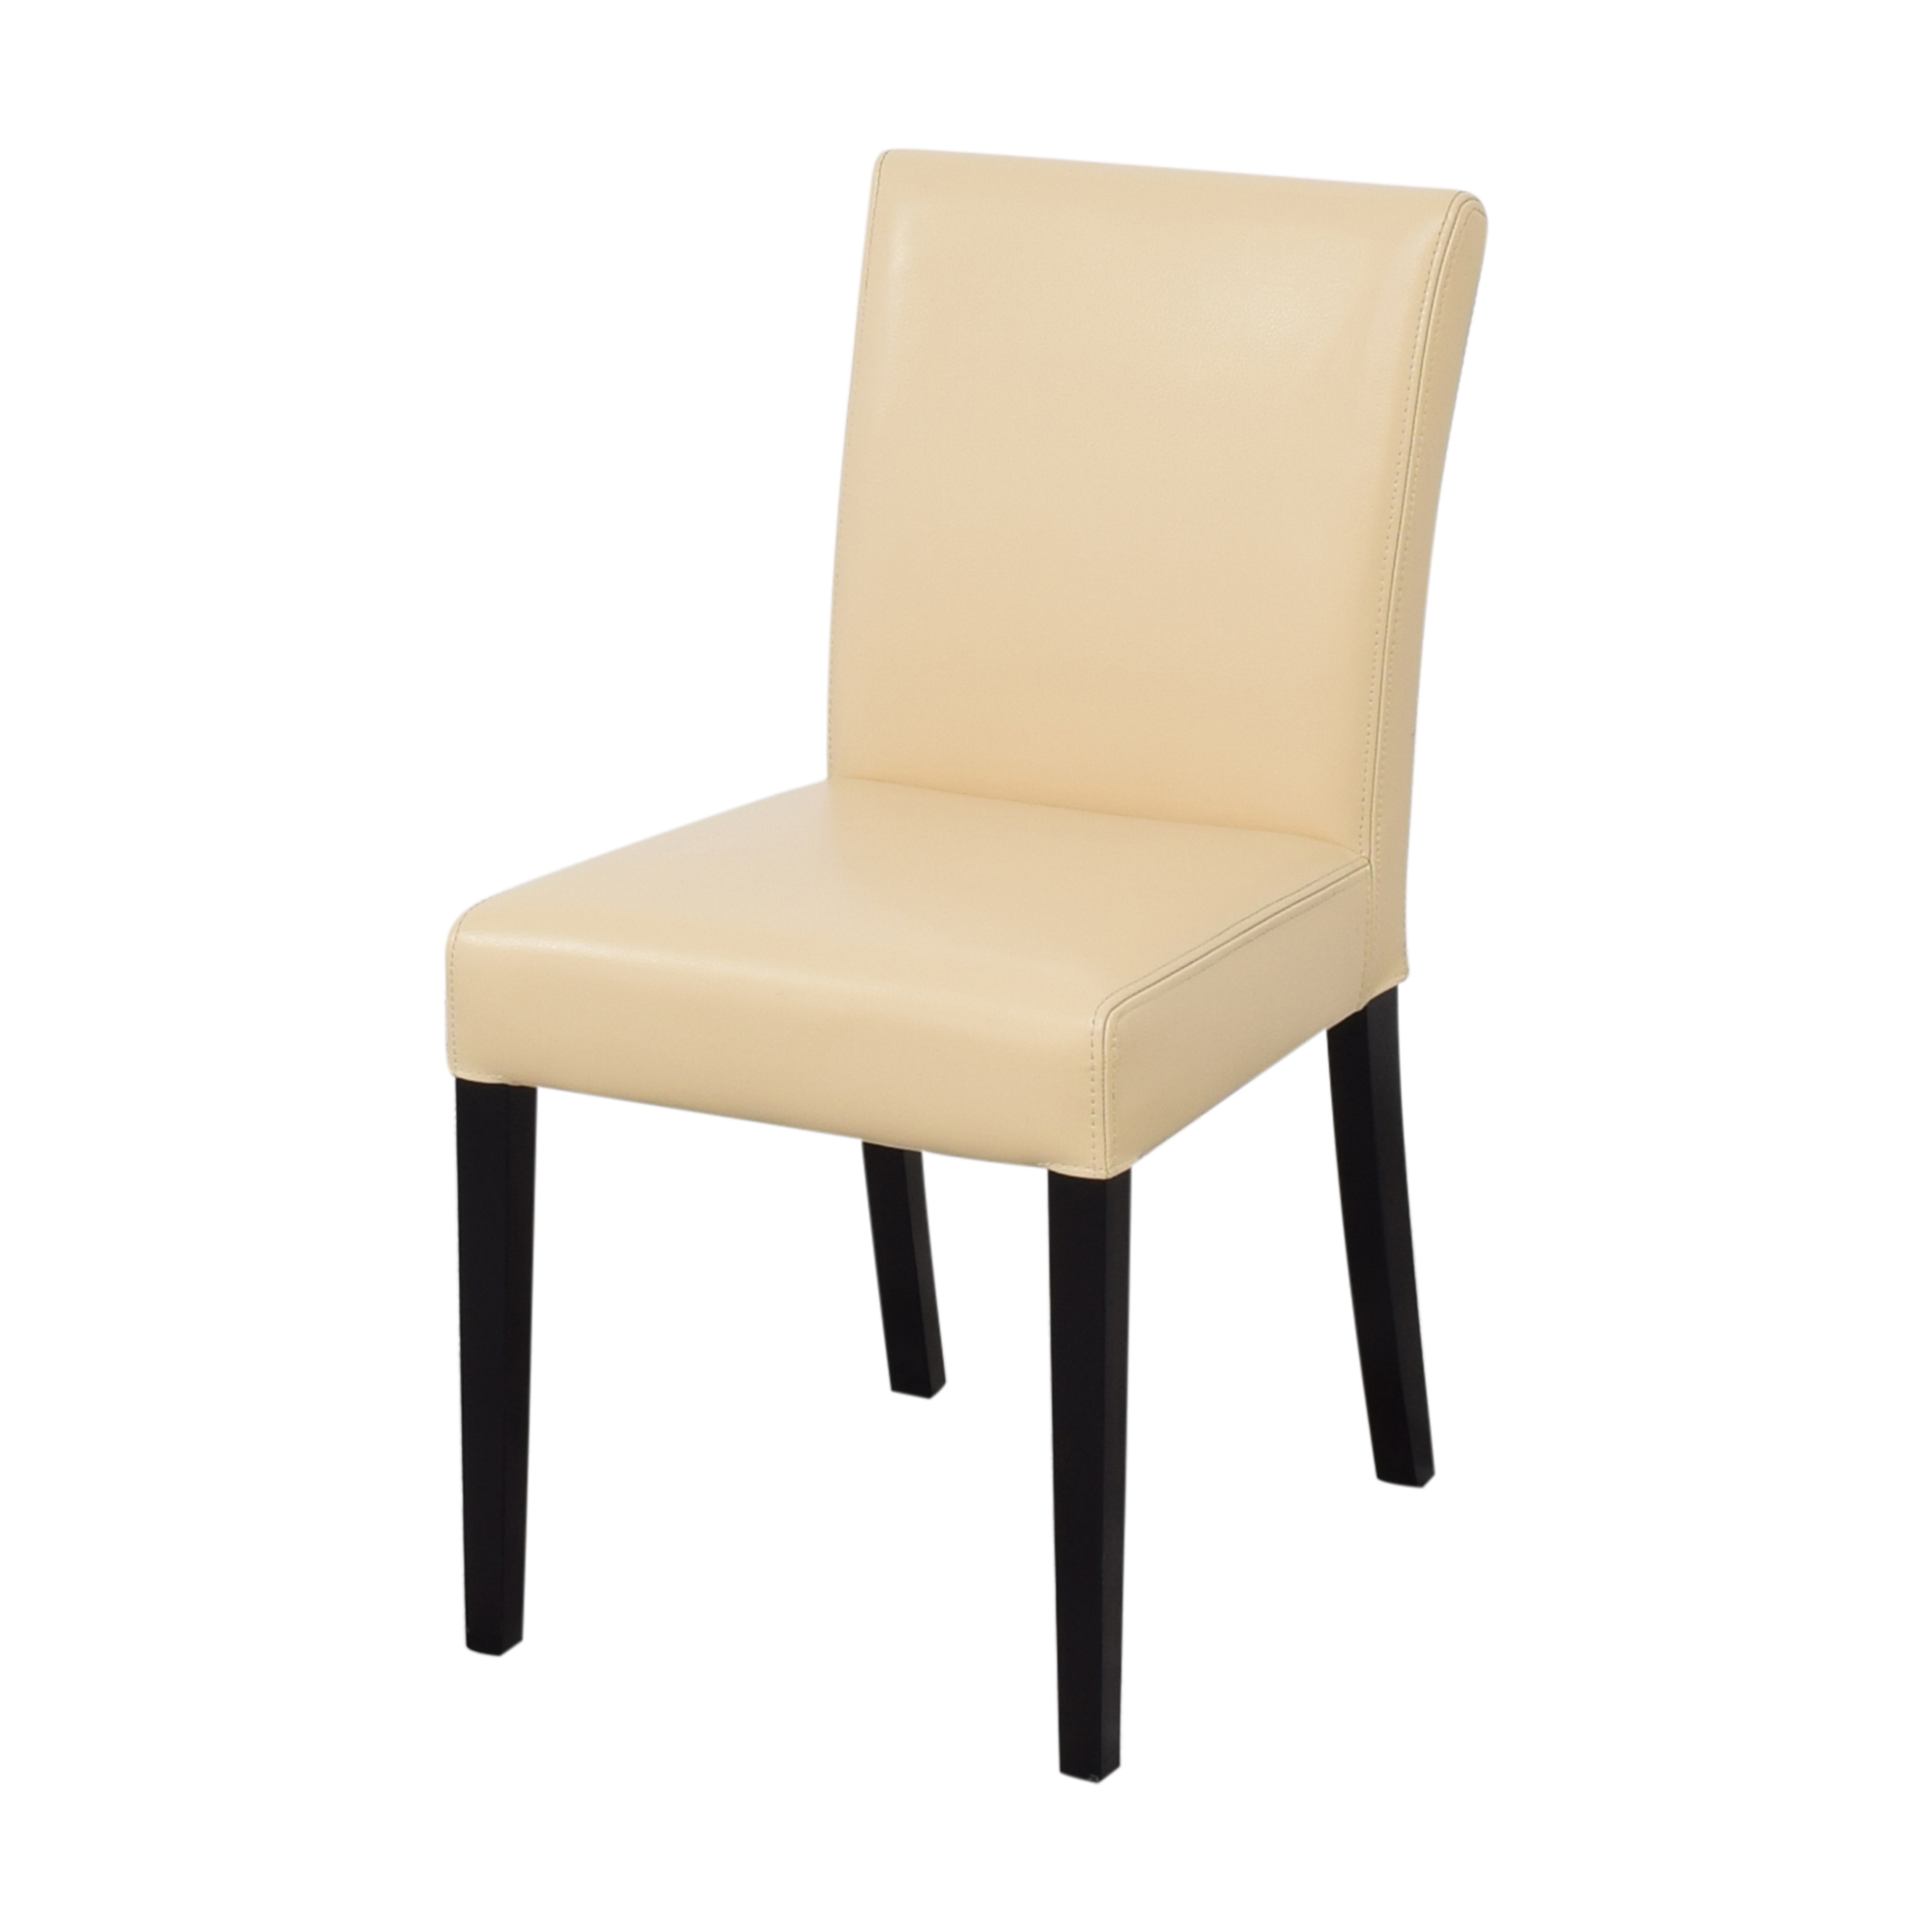 buy Crate & Barrel Lowe Ivory Dining Chairs Crate & Barrel Chairs